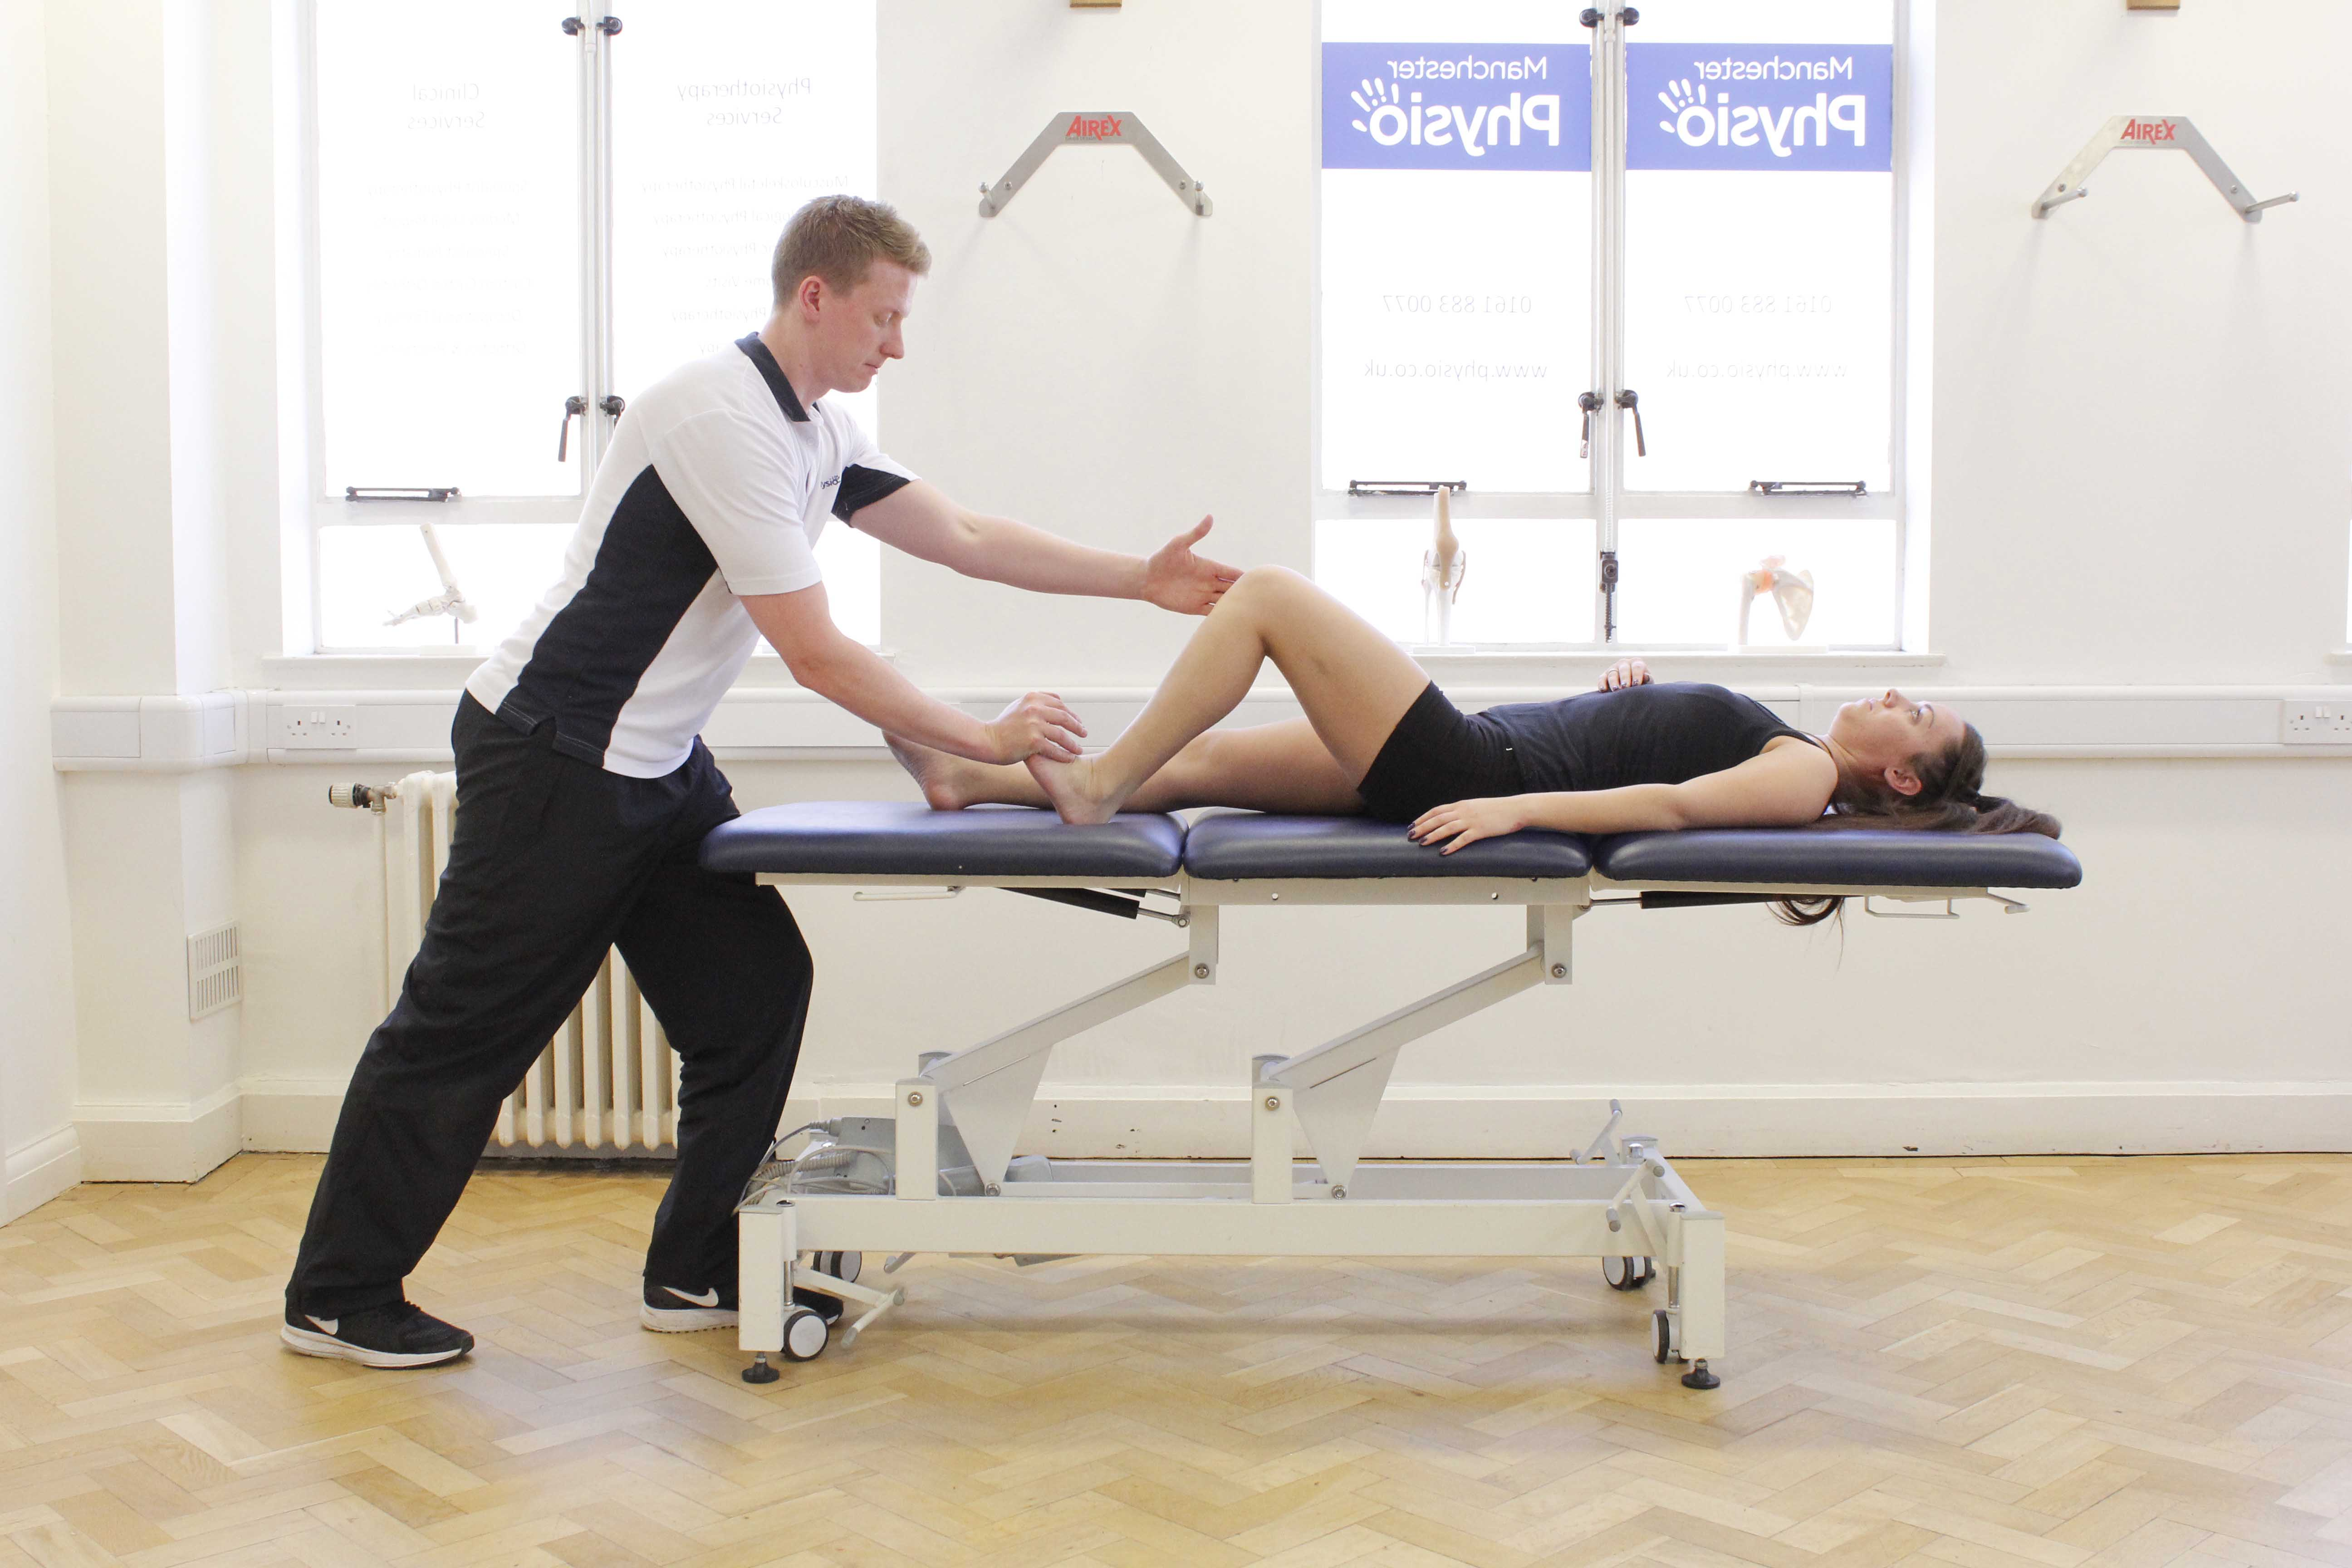 Foot and ankle mobilisations and stretches performed by a physiotherapist